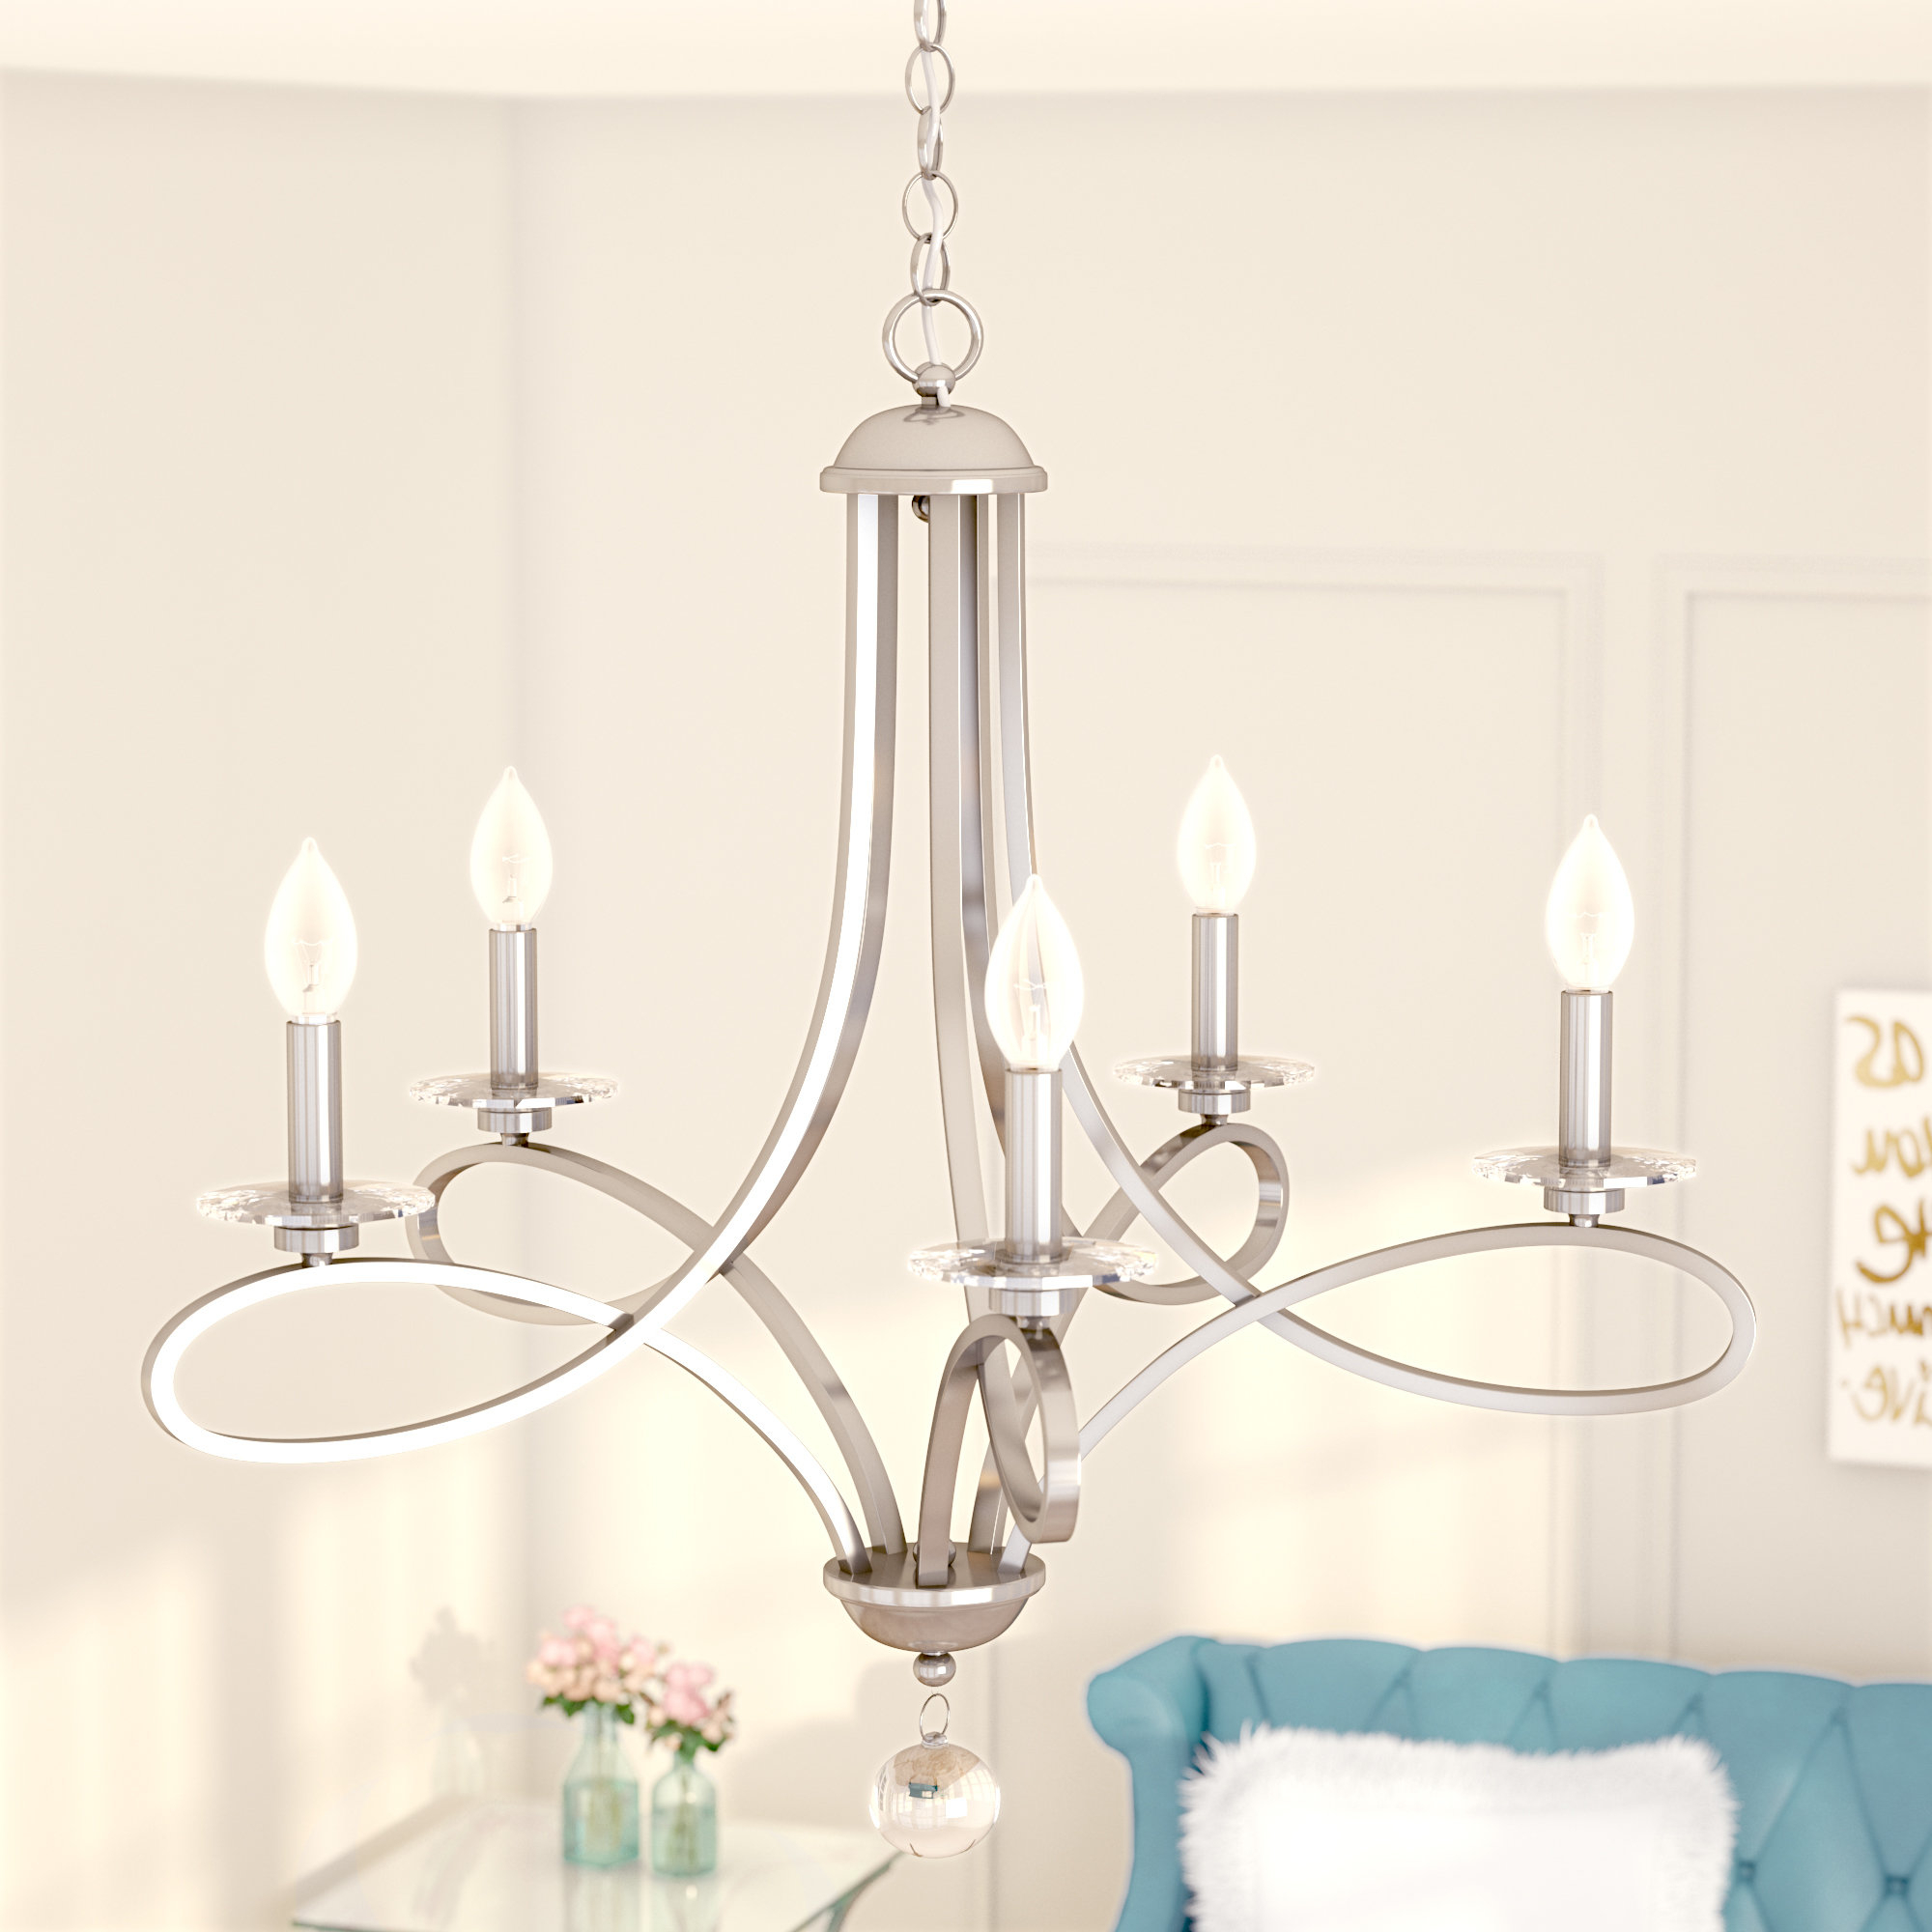 Berger 5 Light Candle Style Chandeliers For Most Up To Date Berger 5 Light Candle Style Chandelier (View 3 of 20)